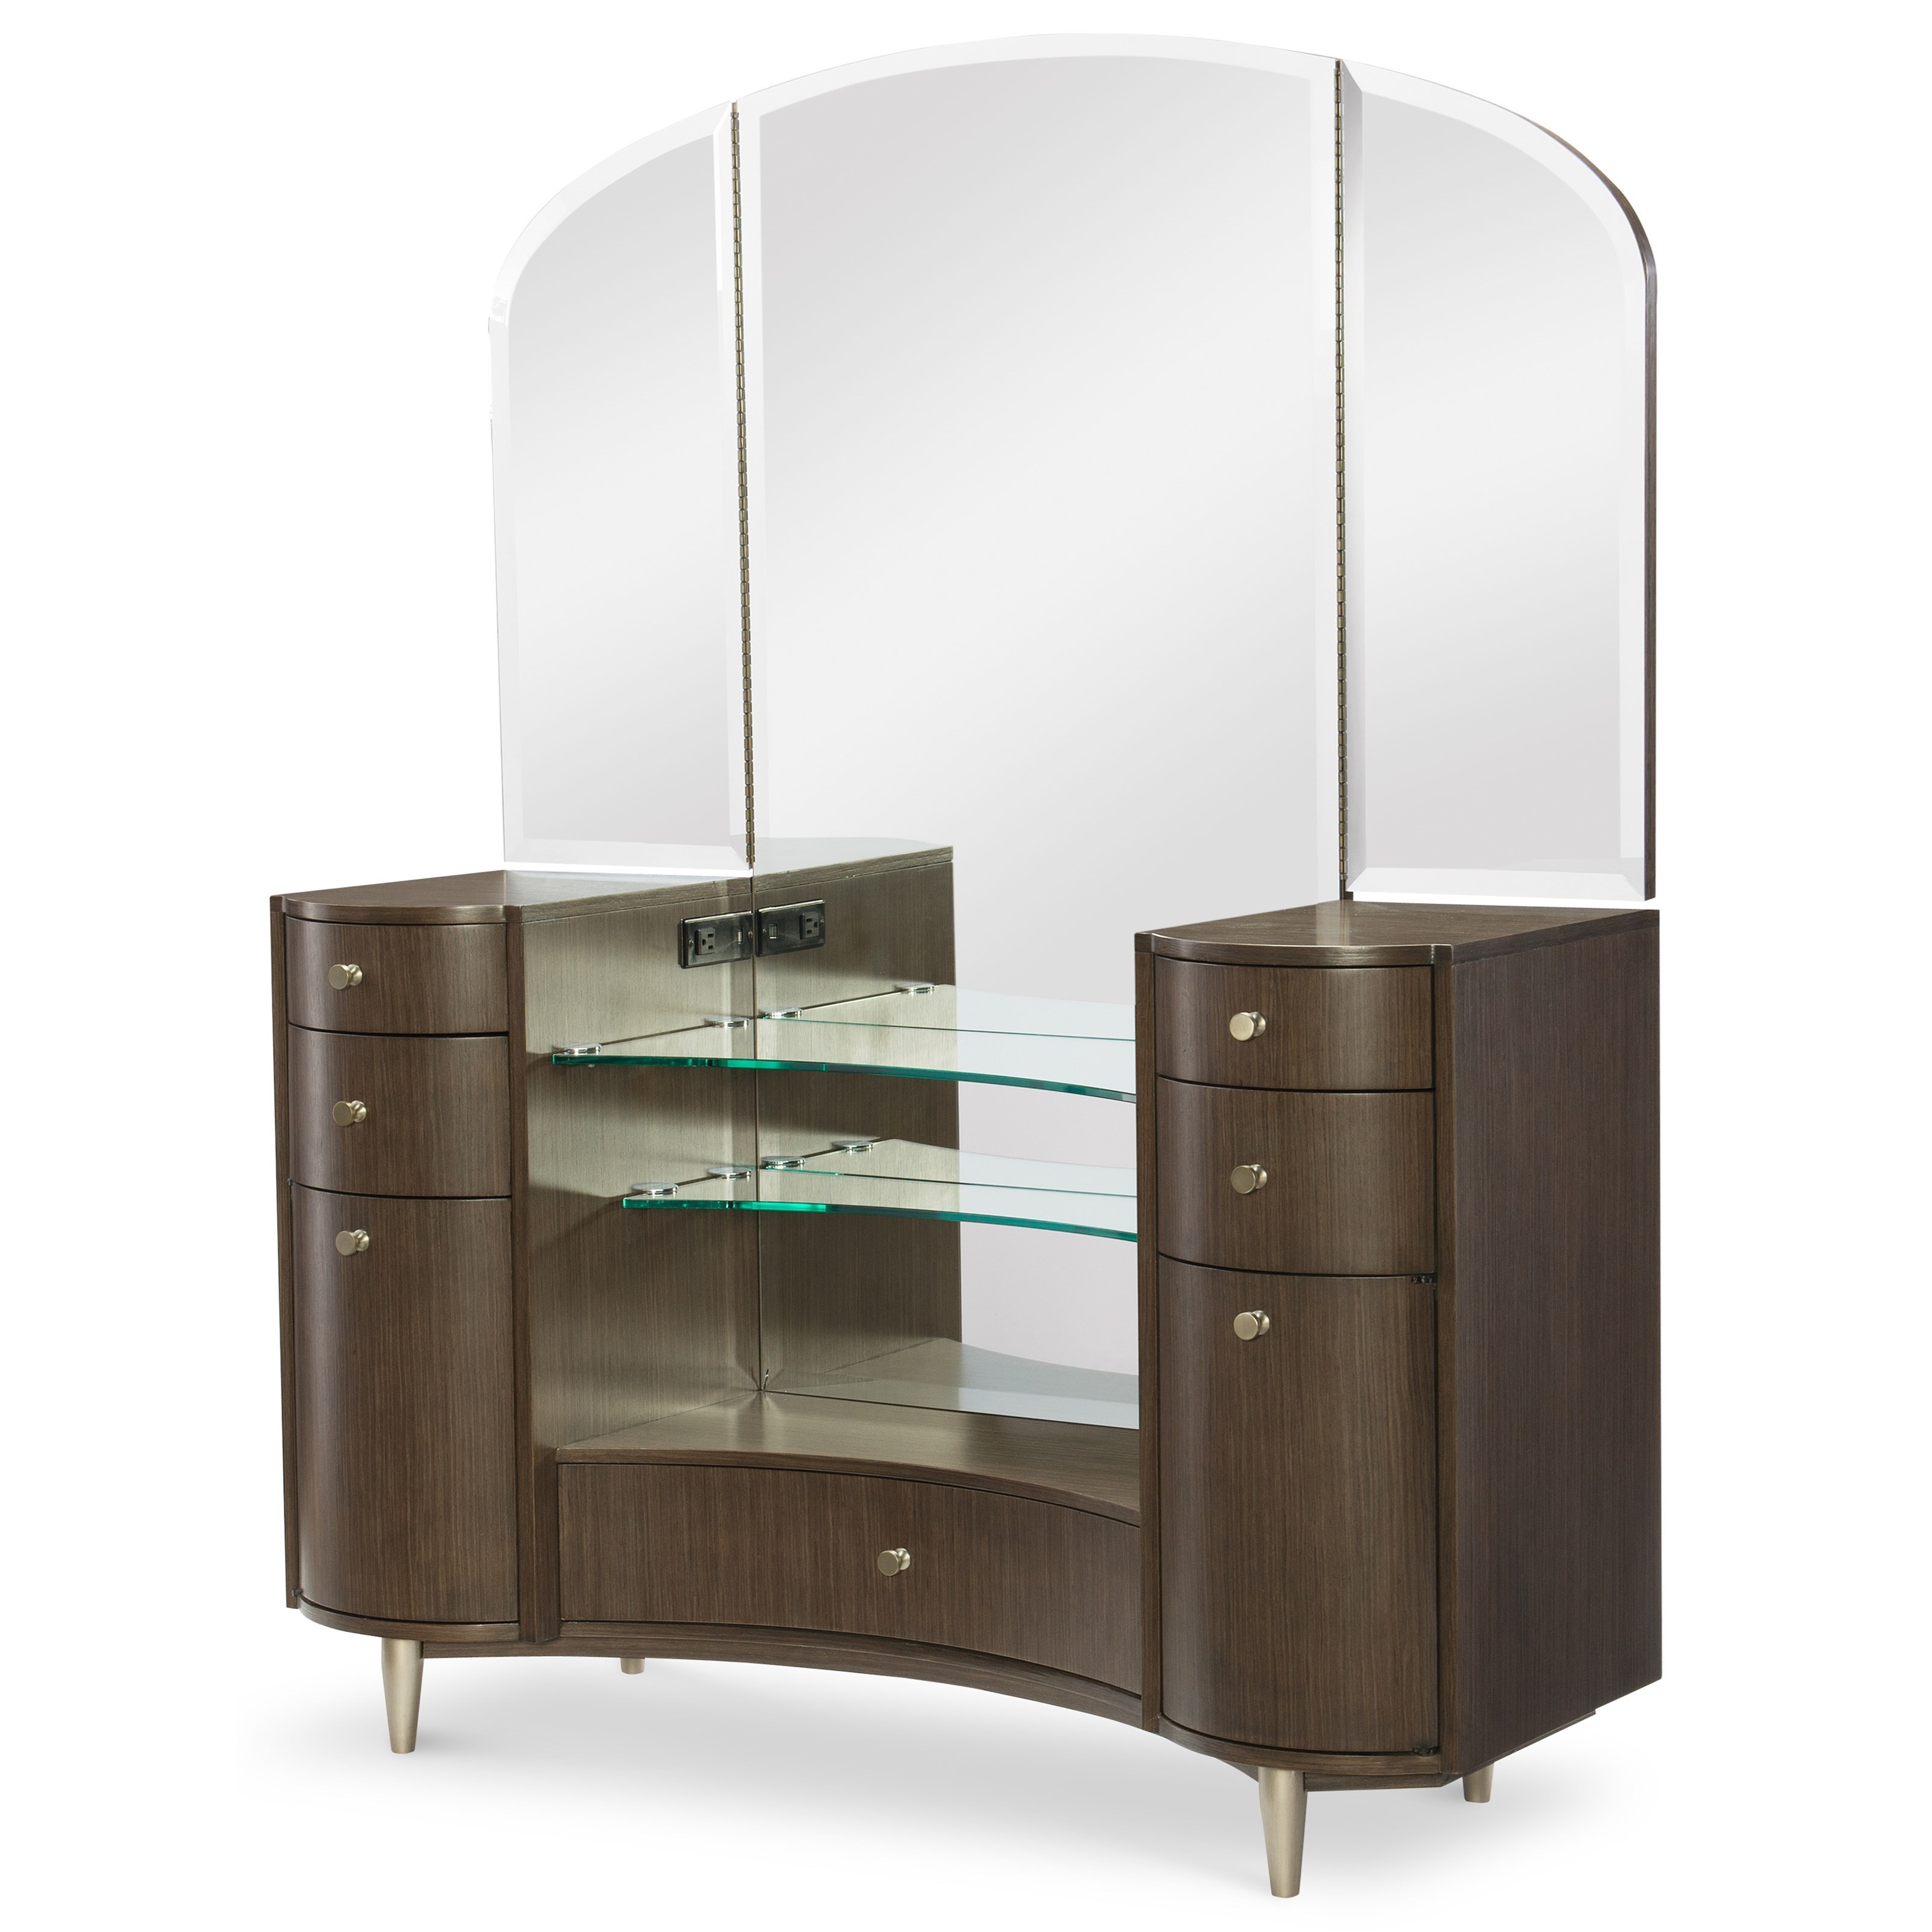 Rachael Ray Home by Legacy Classic Soho Vanity Desk - Item Number: 6020-7400